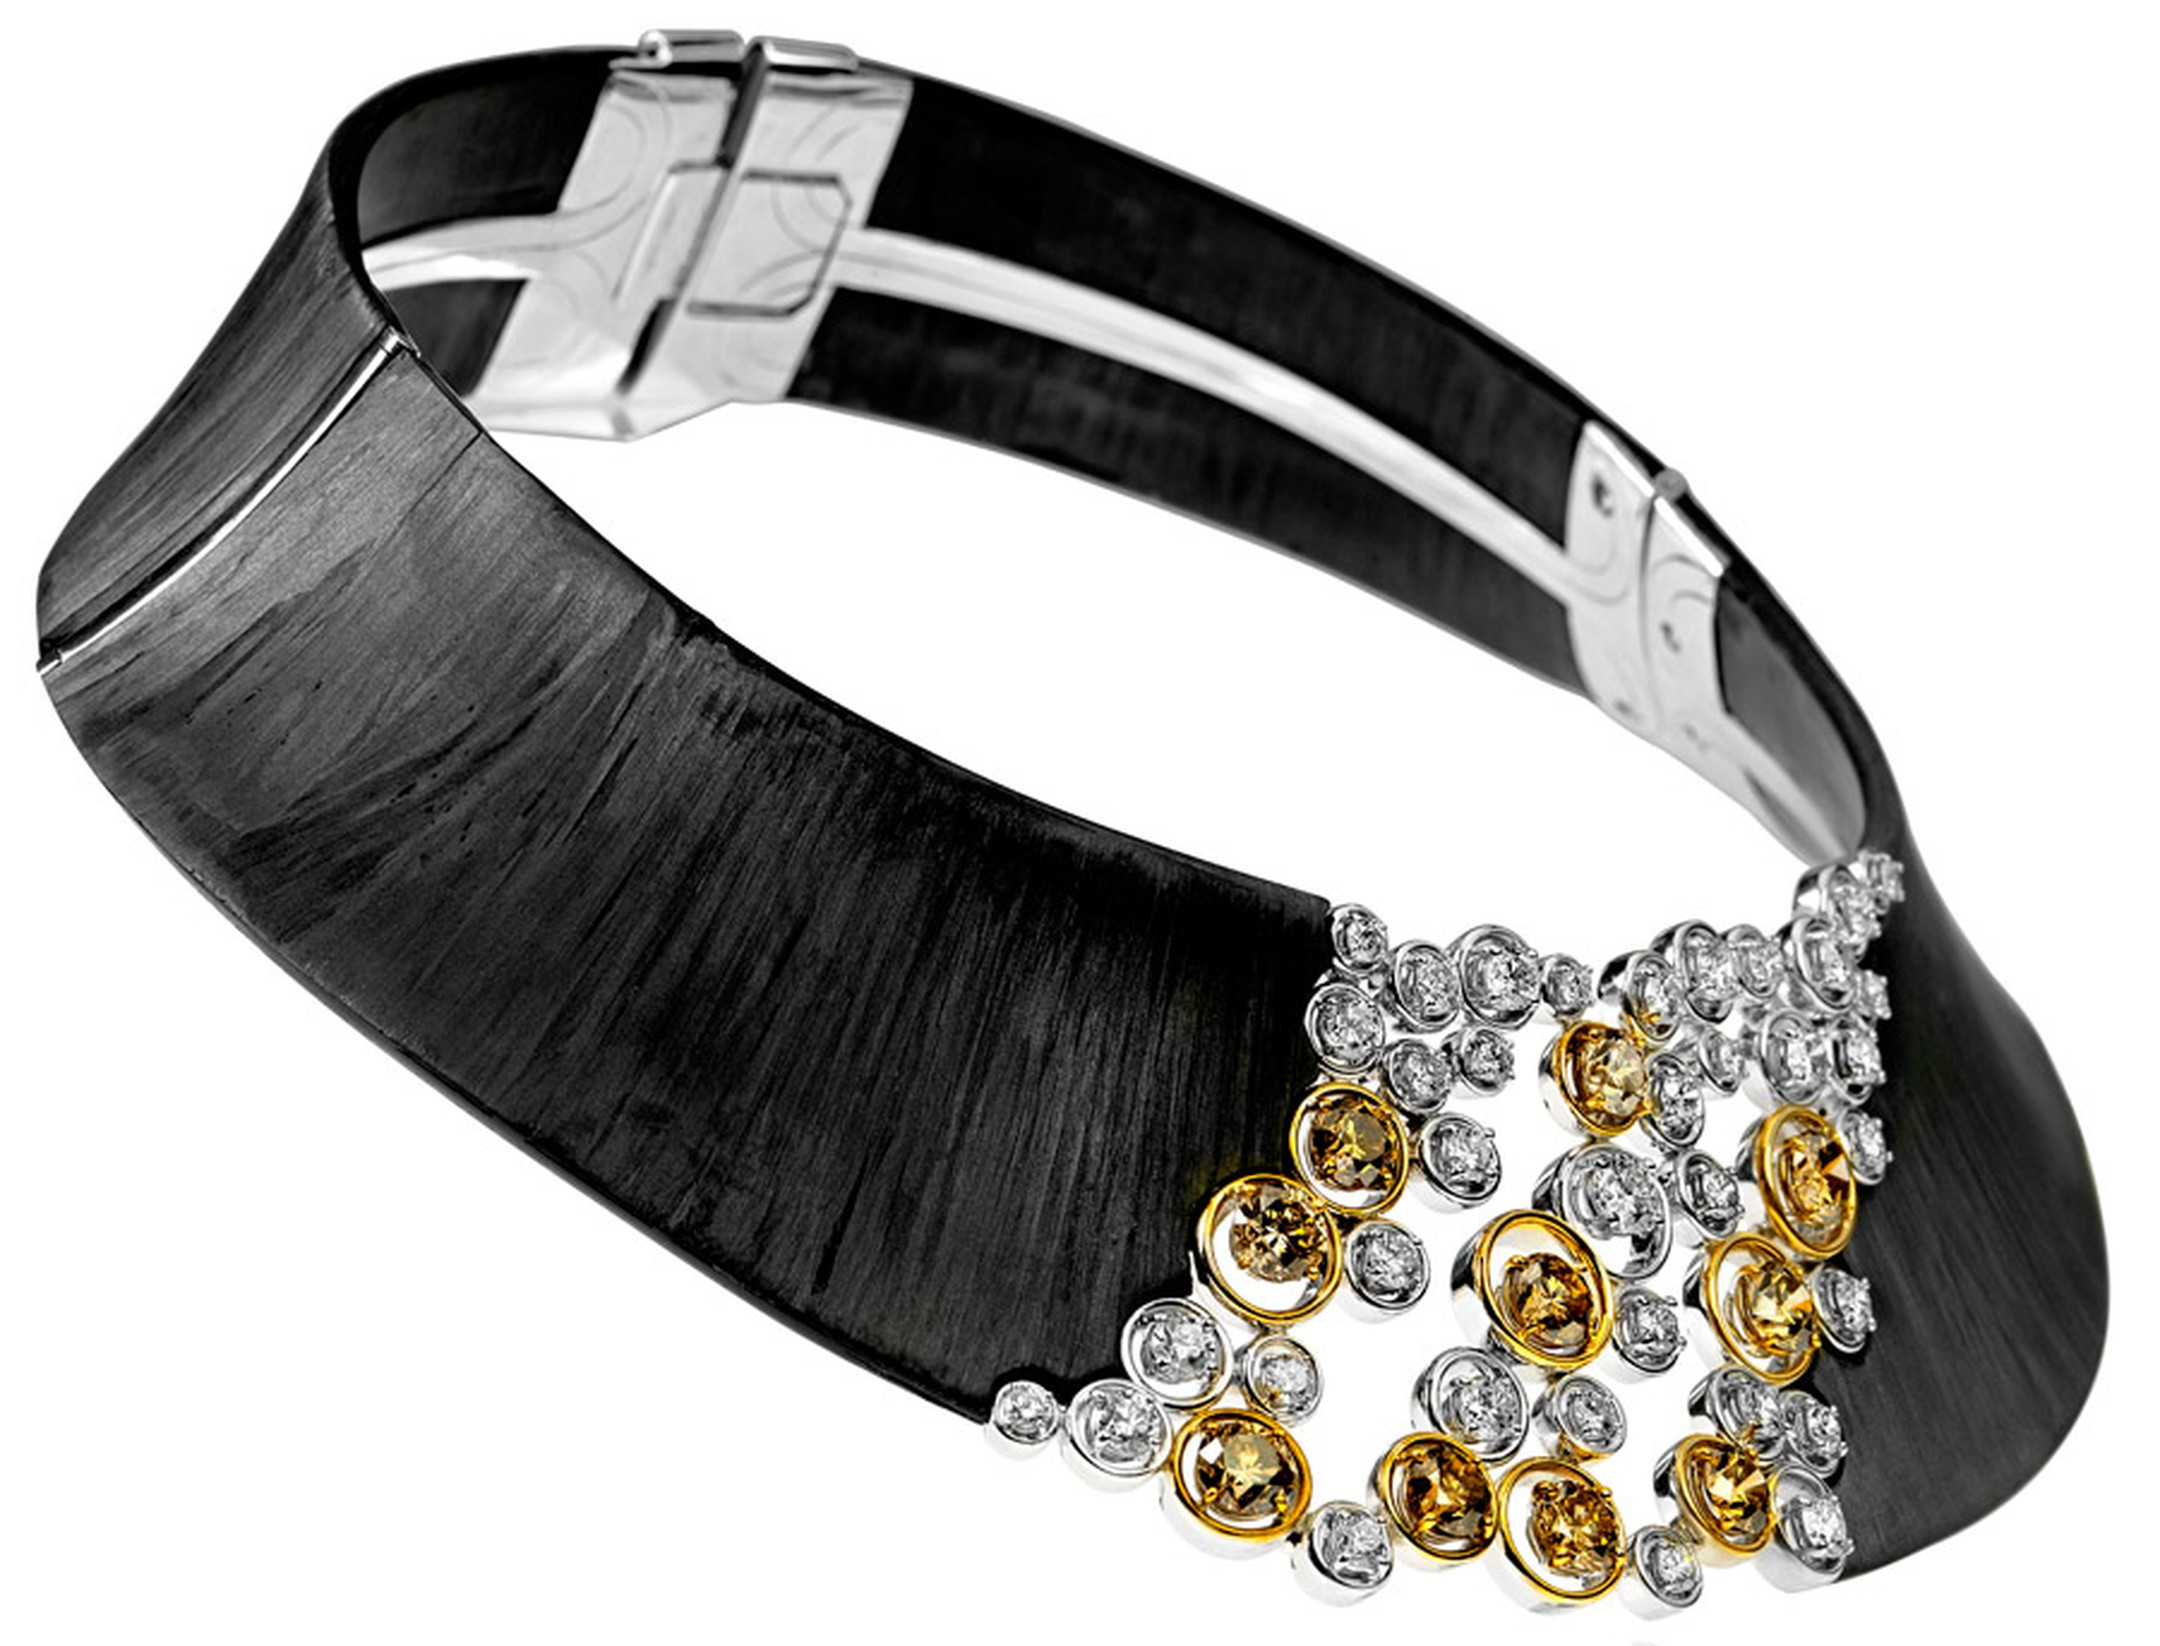 Adler-Necklace-in-carbon-in-white-and-yellow-gold-set-with-brown-diamonds-and-diamonds.jpg